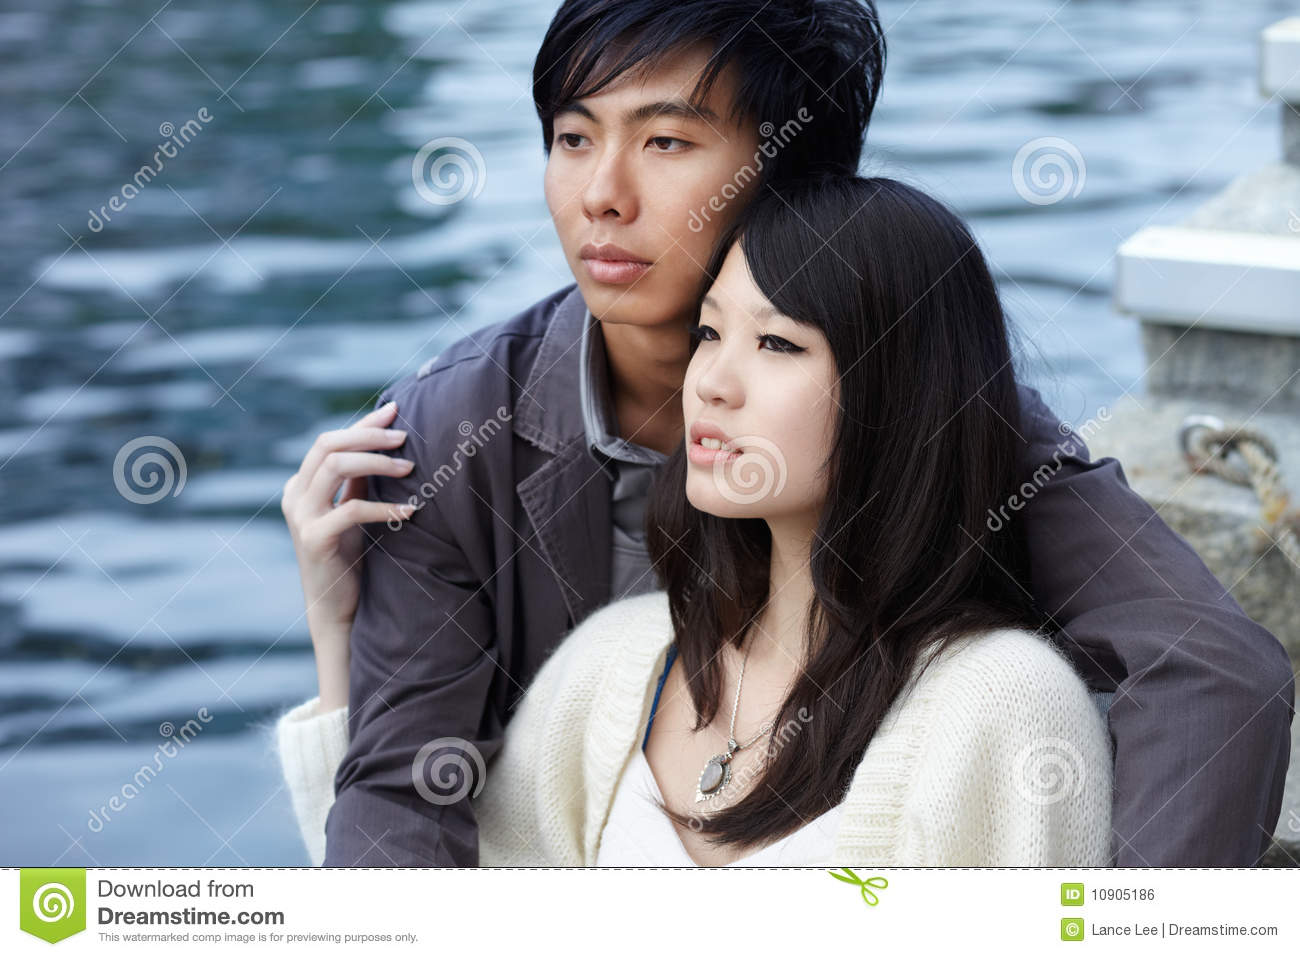 asian dating riverside Riverside women - visit the most popular and simplest online dating site to flirt, chart, or date with interesting people online, sign up for free while men may feel absolutely happy sitting at home, watching their favorite sports on television, asian women love to spend time with family and friends.